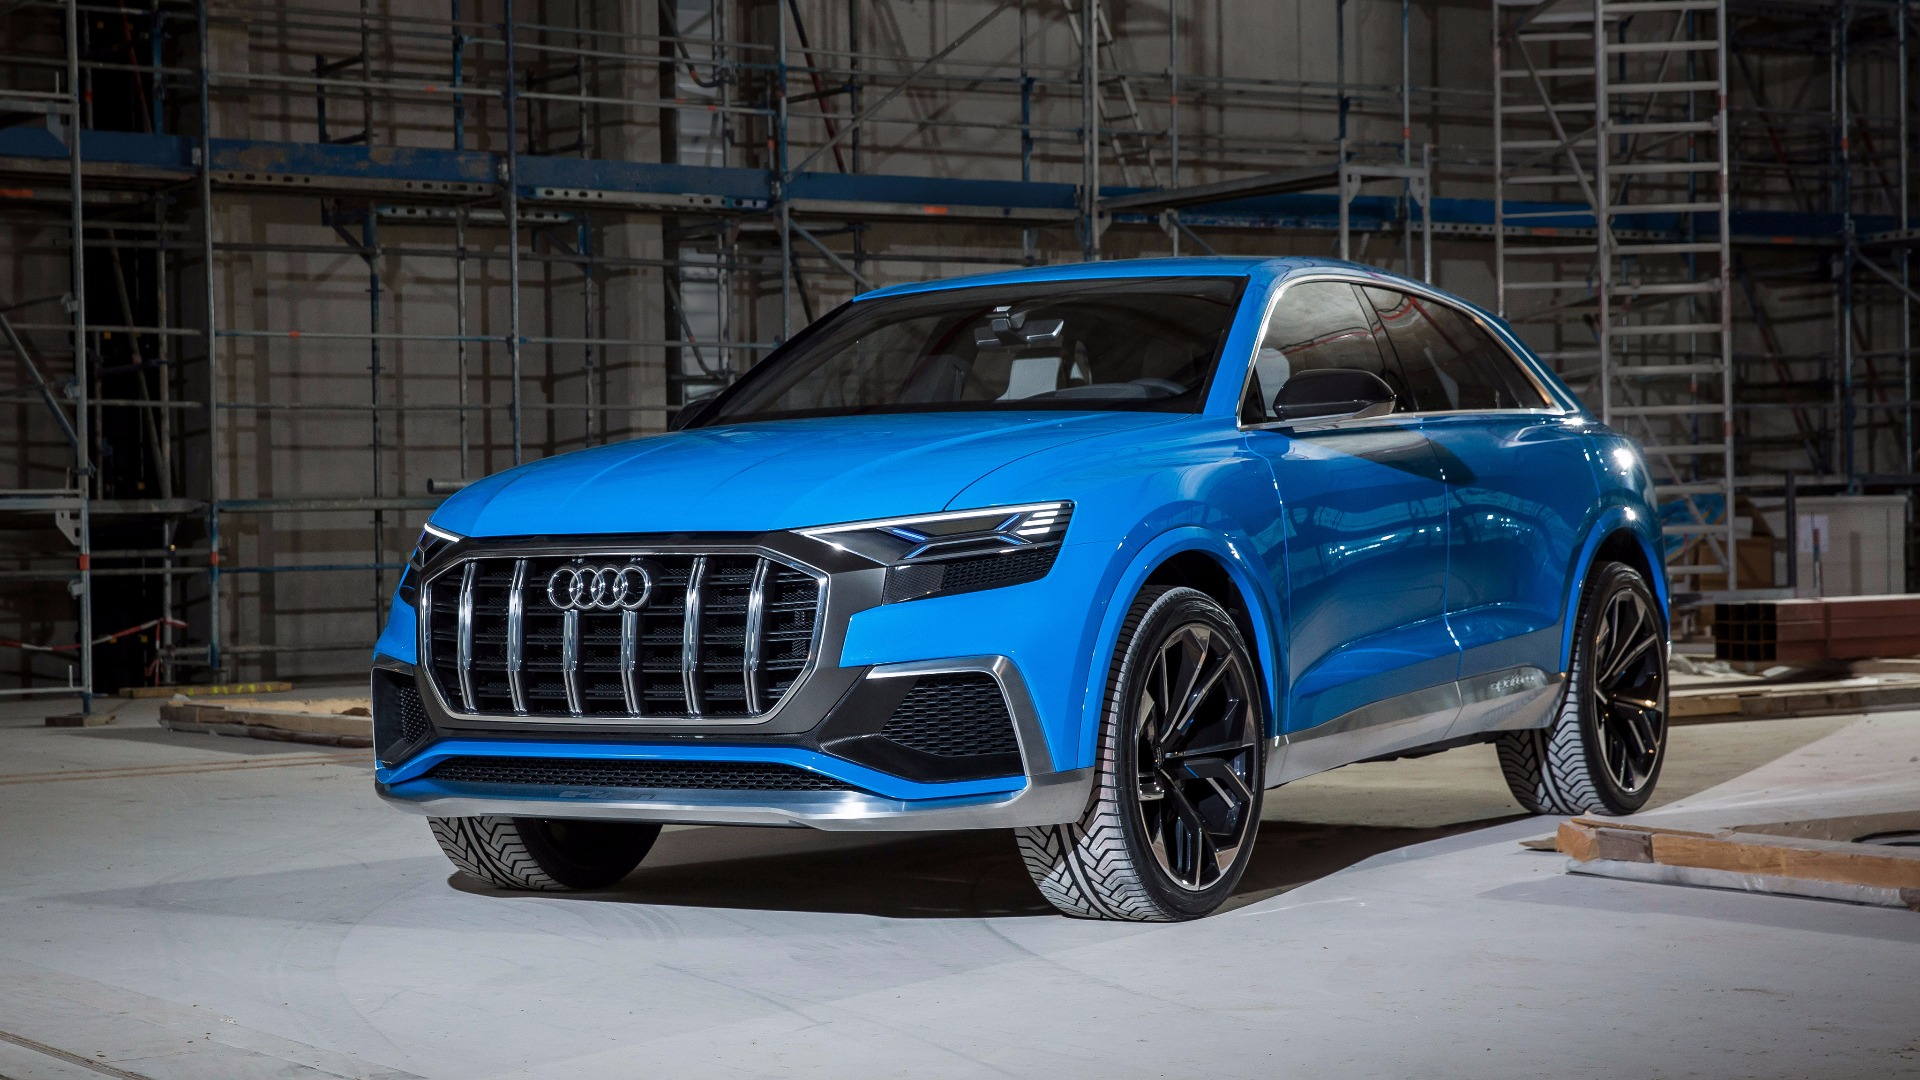 News Geneva Debut Set For Audi S Hot Rs Q8 Concept